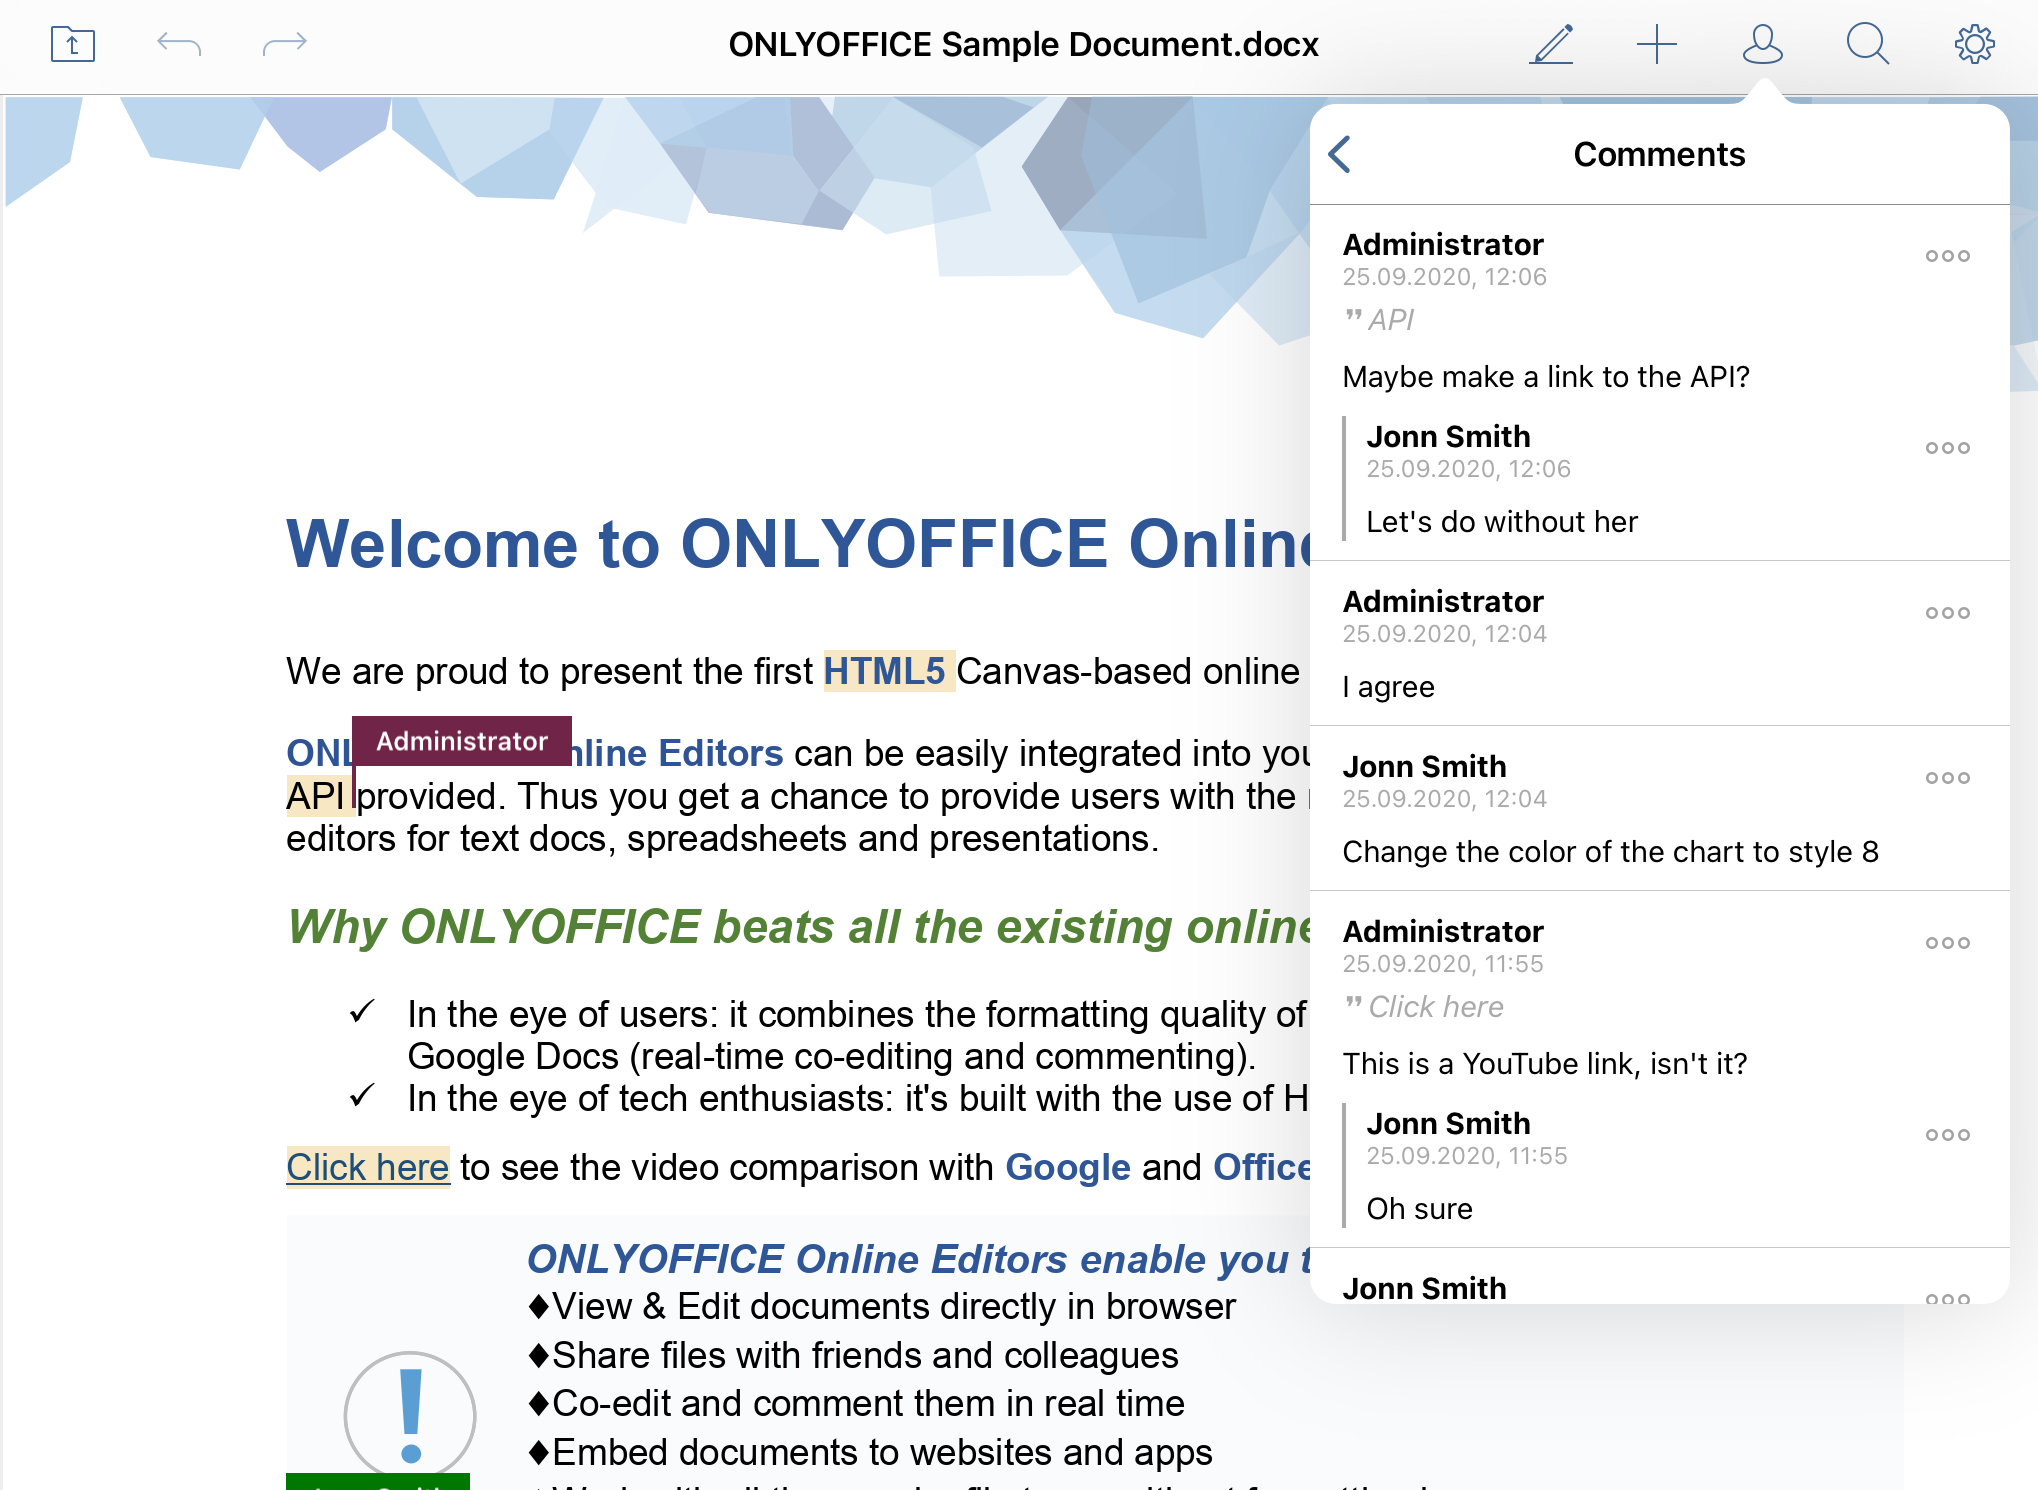 ONLYOFFICE Documents 6.2 for iOS with comments and document review is available on App Store